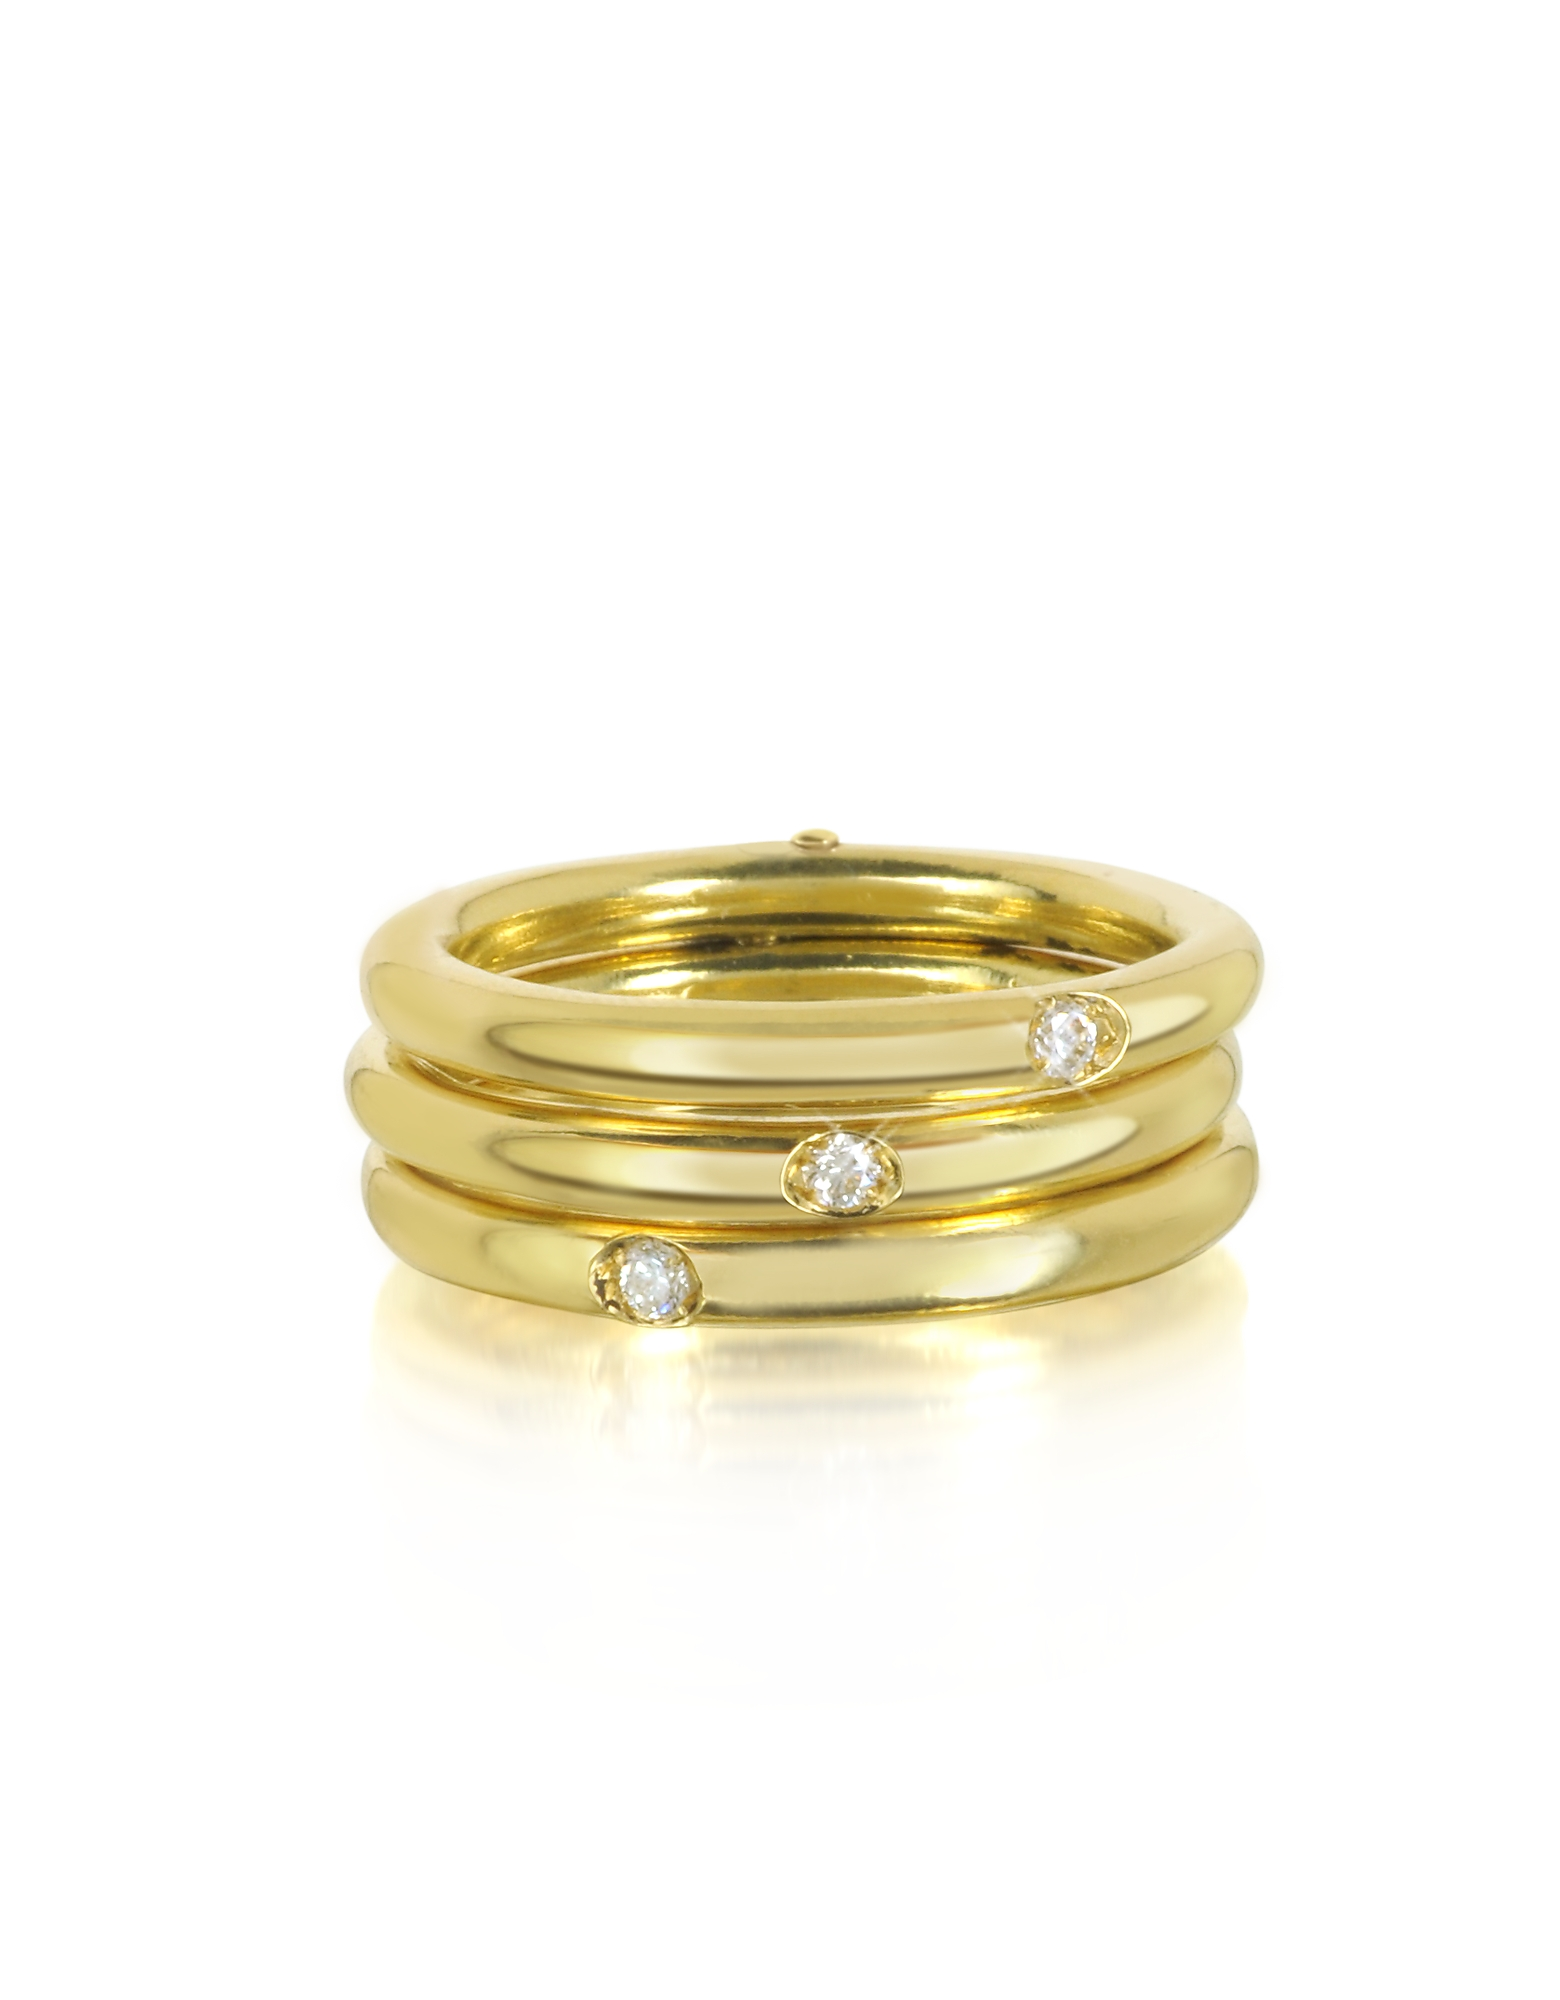 Bernard Delettrez Rings, 9K Gold Triple Secret Ring w/Diamonds